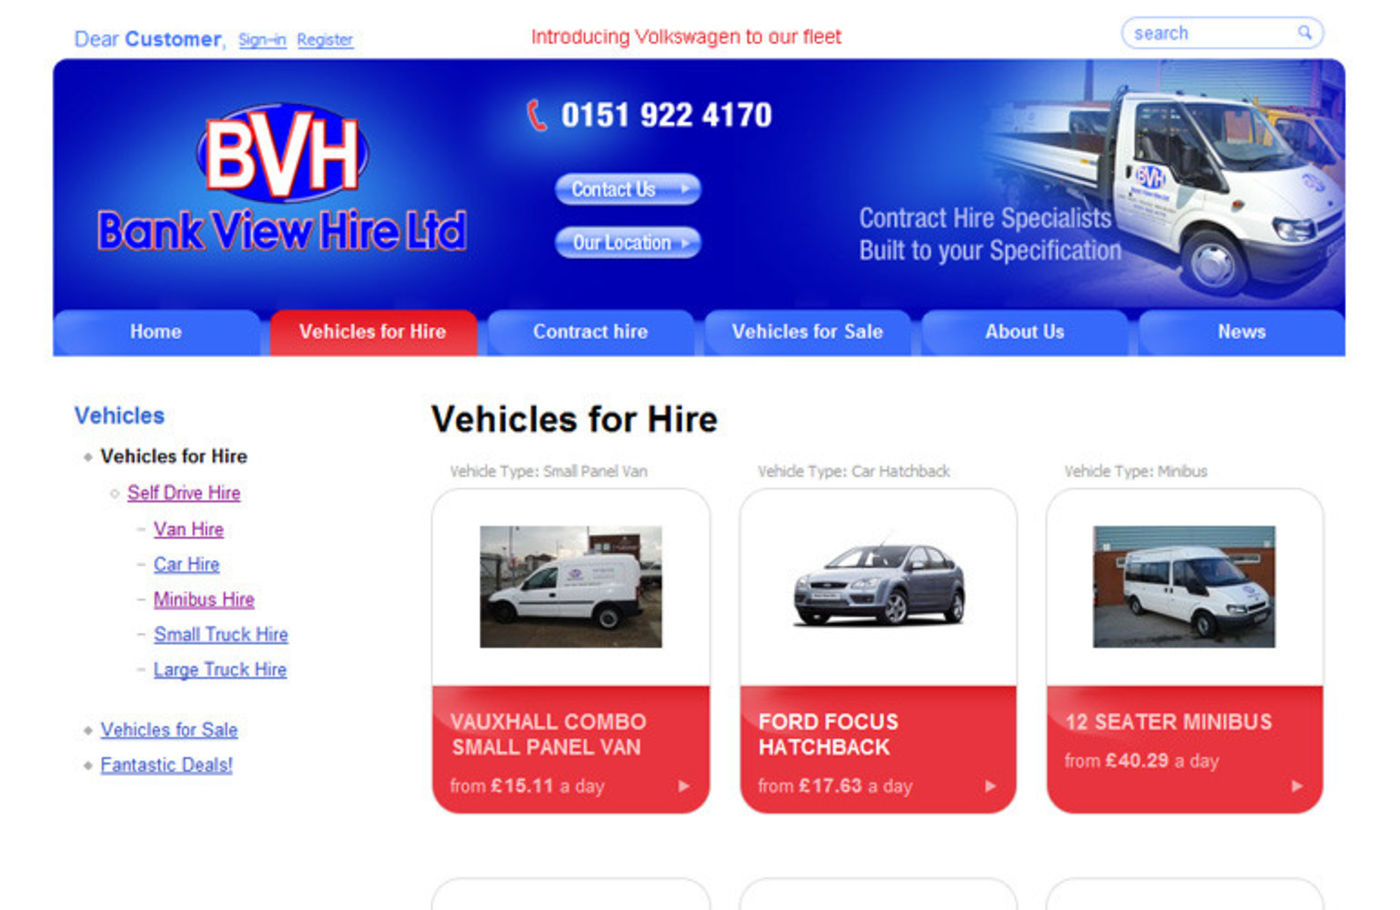 Bank View Hire Vehicles for Hire